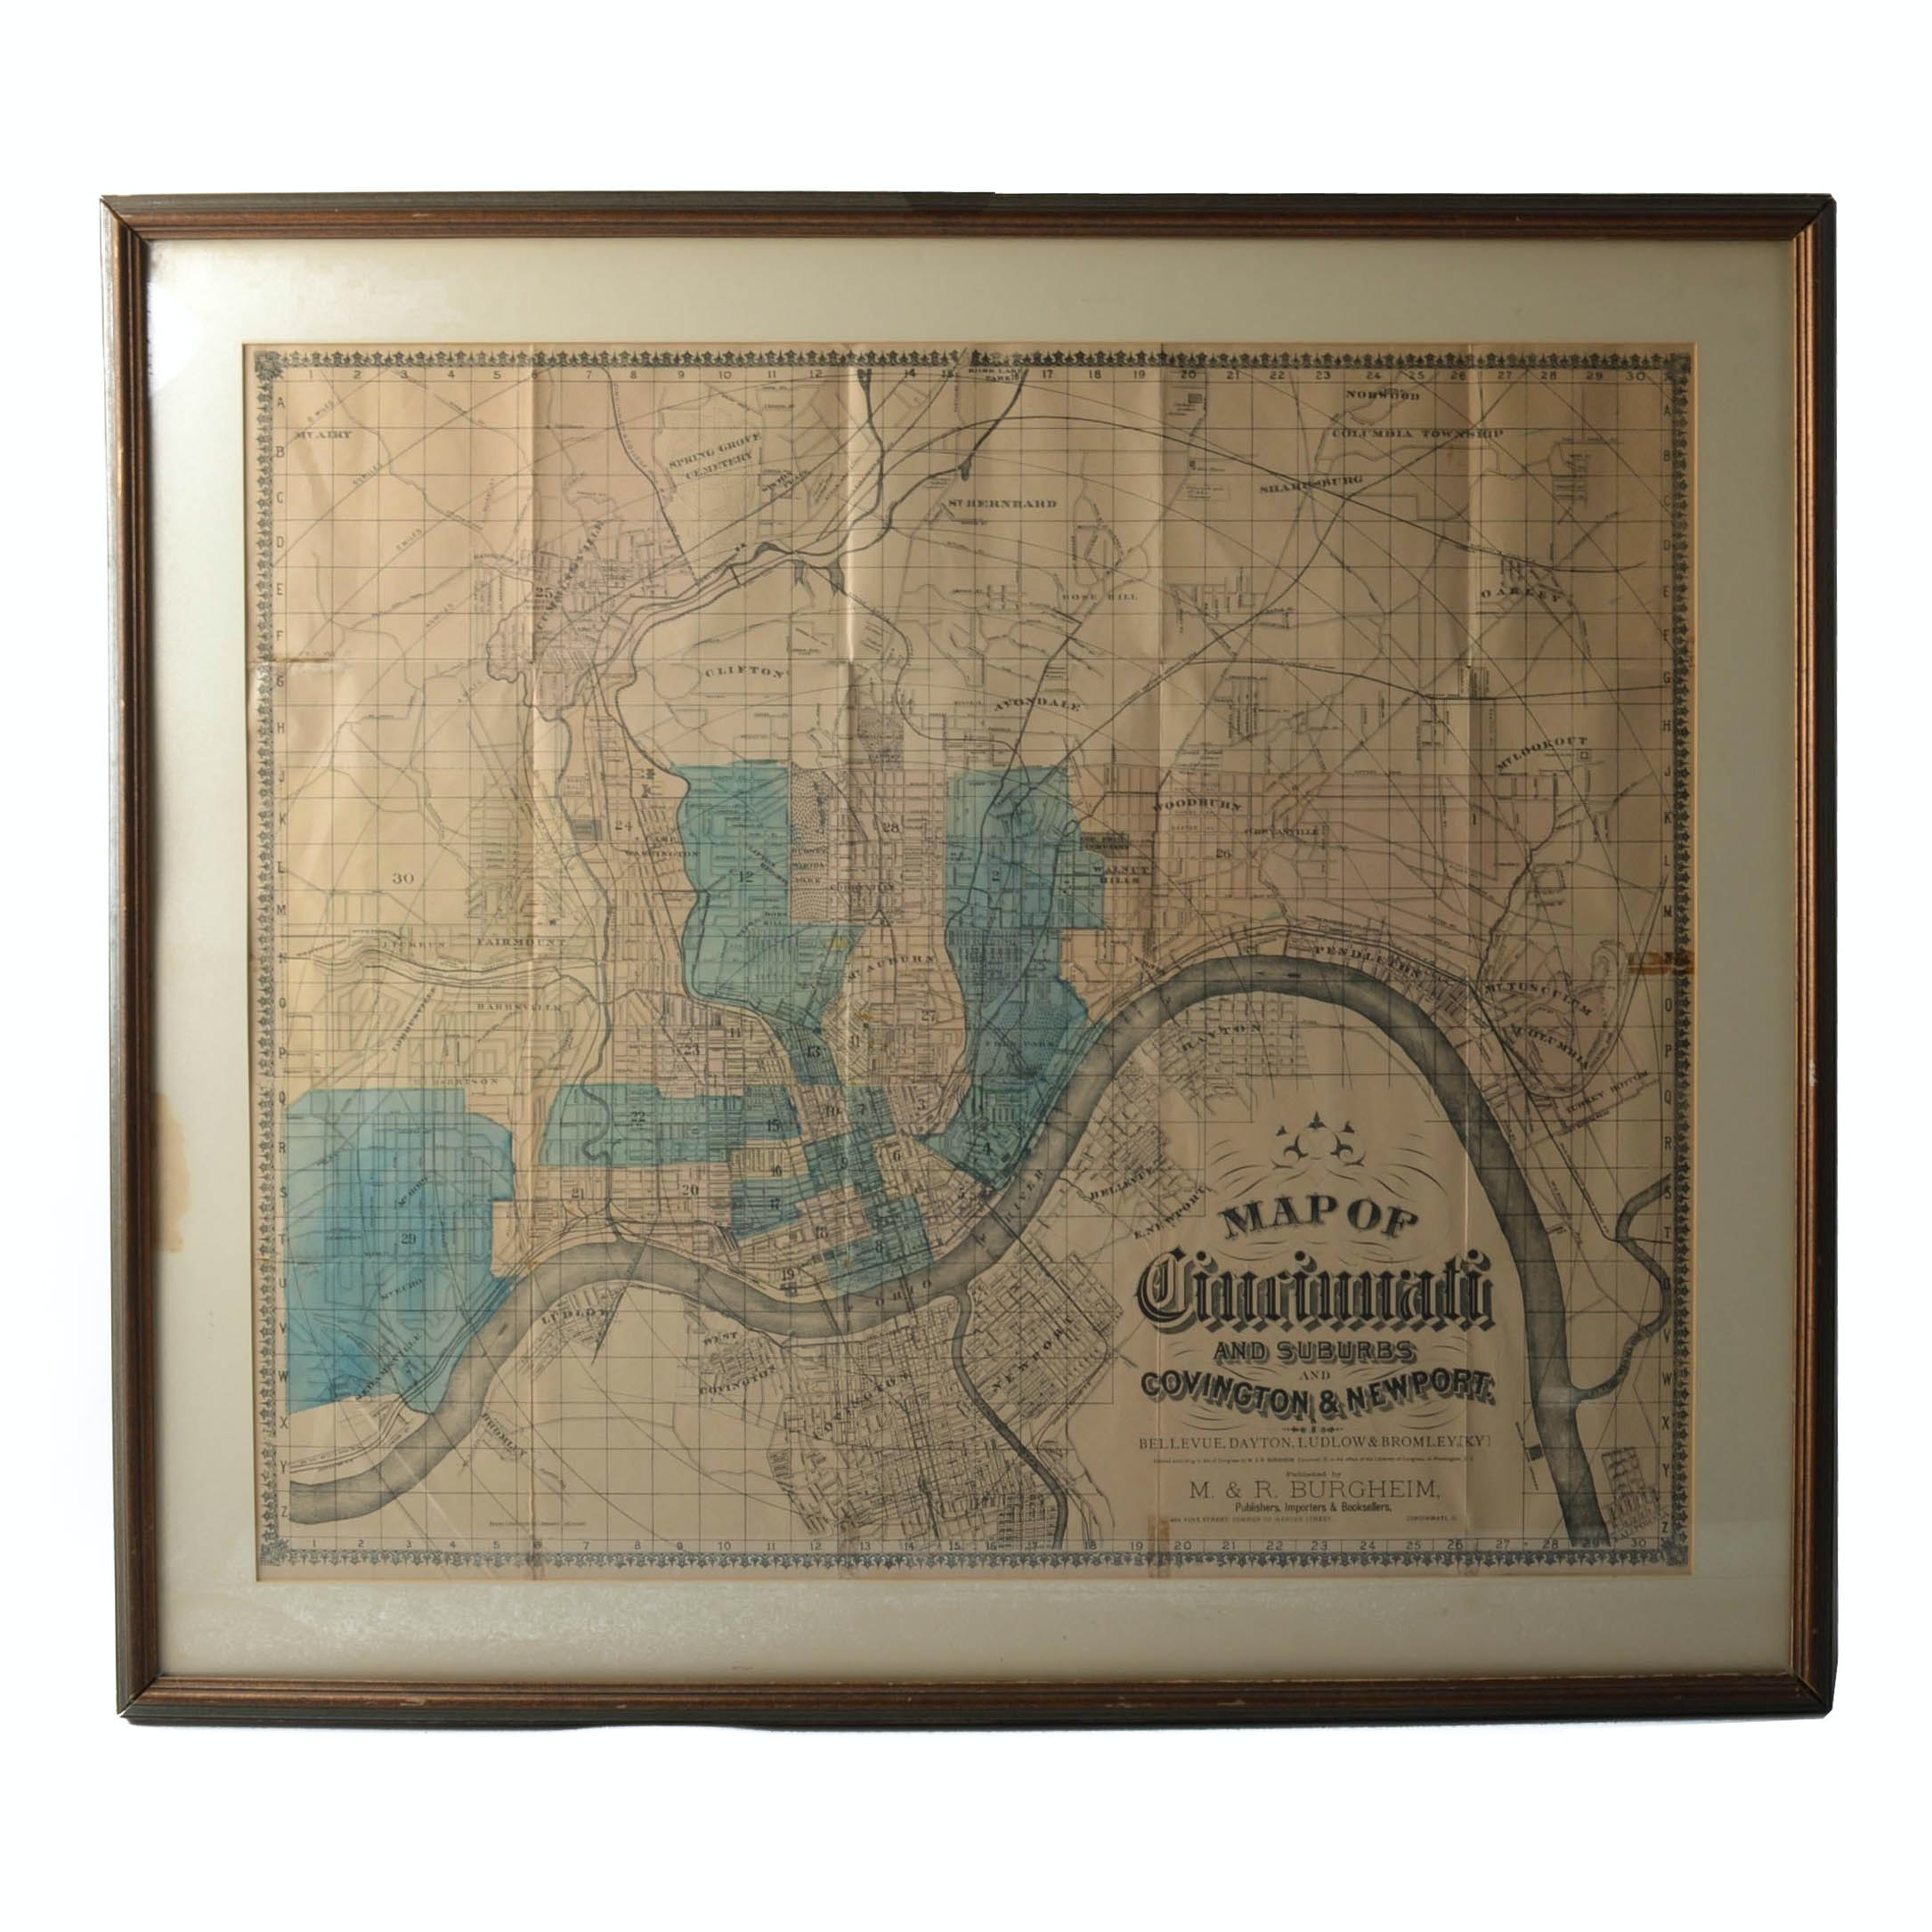 Framed 1886 Map of Cincinnati and Northern Kentucky Suburbs